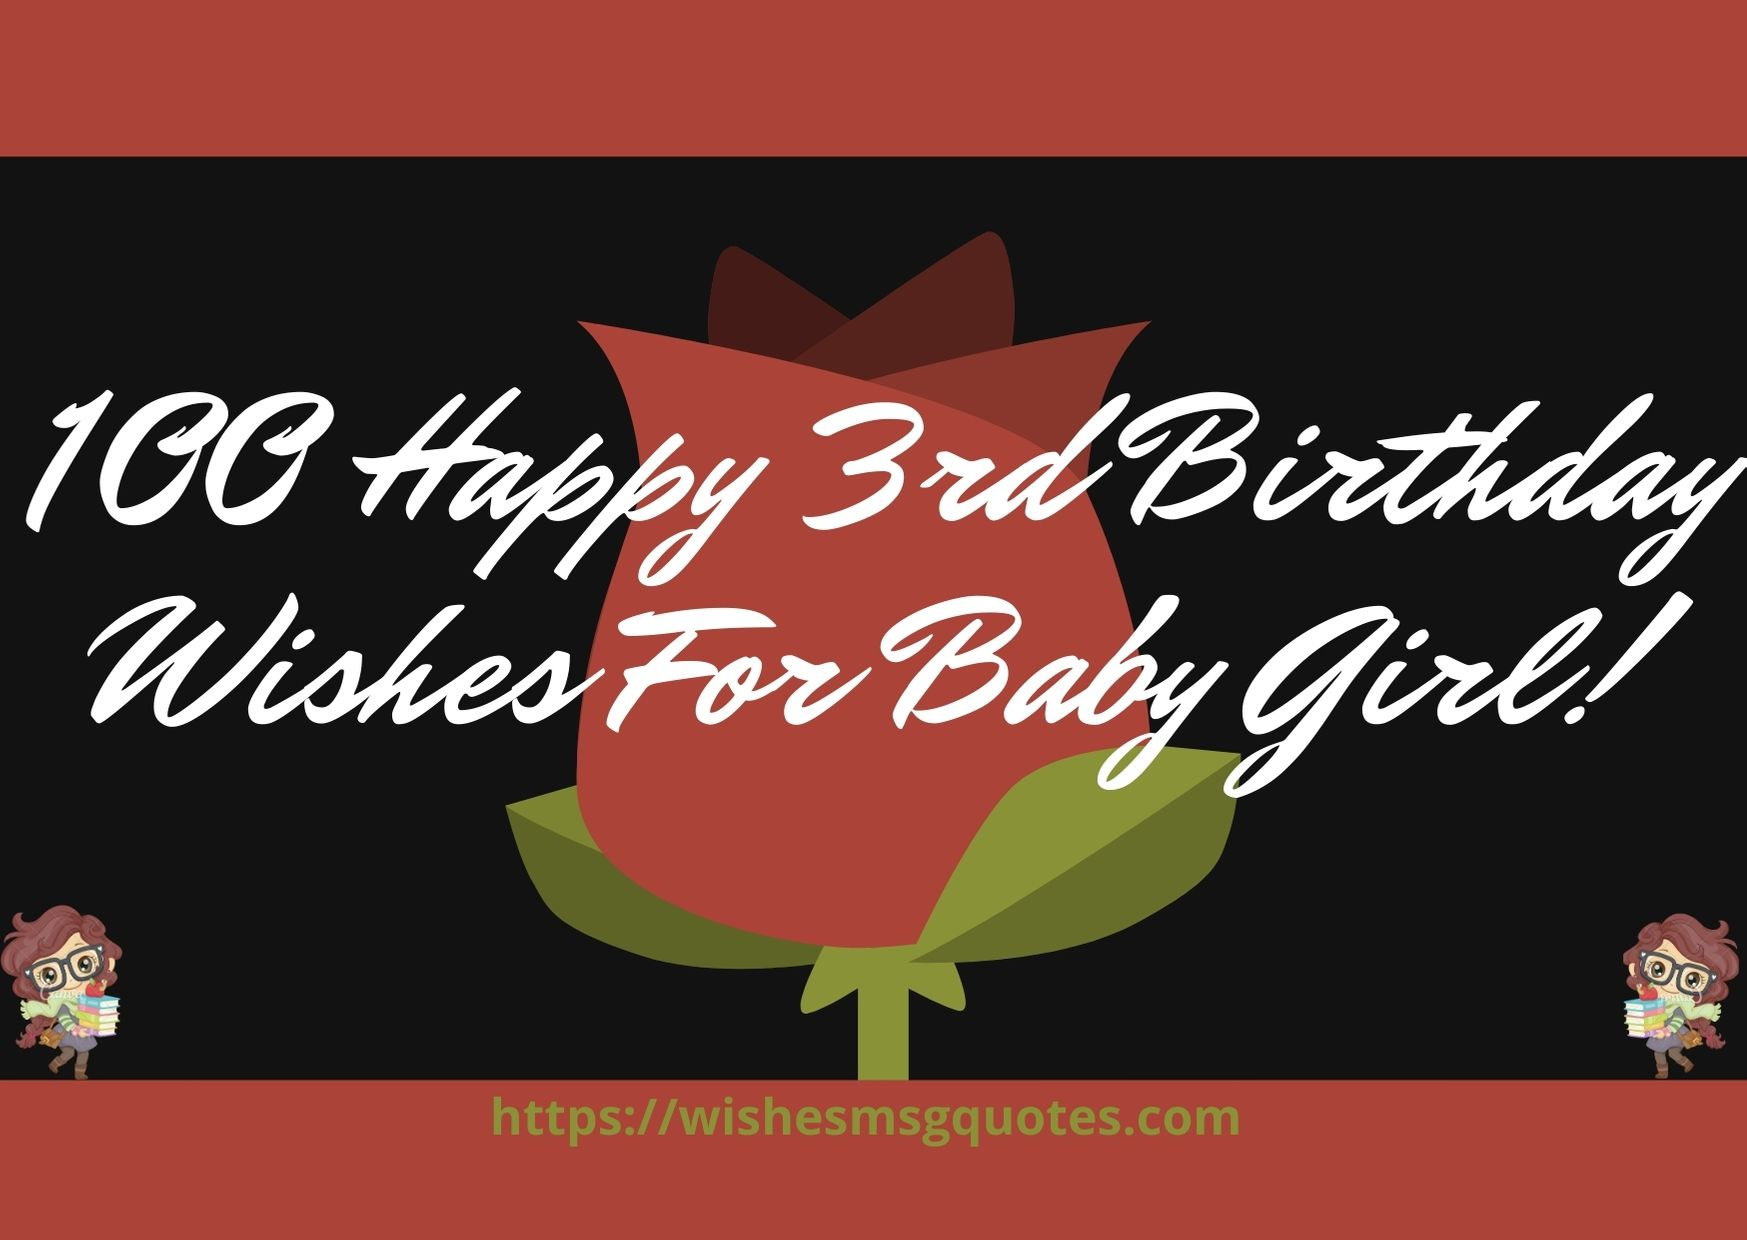 100 Happy 3rd Birthday Wishes For Baby Girl